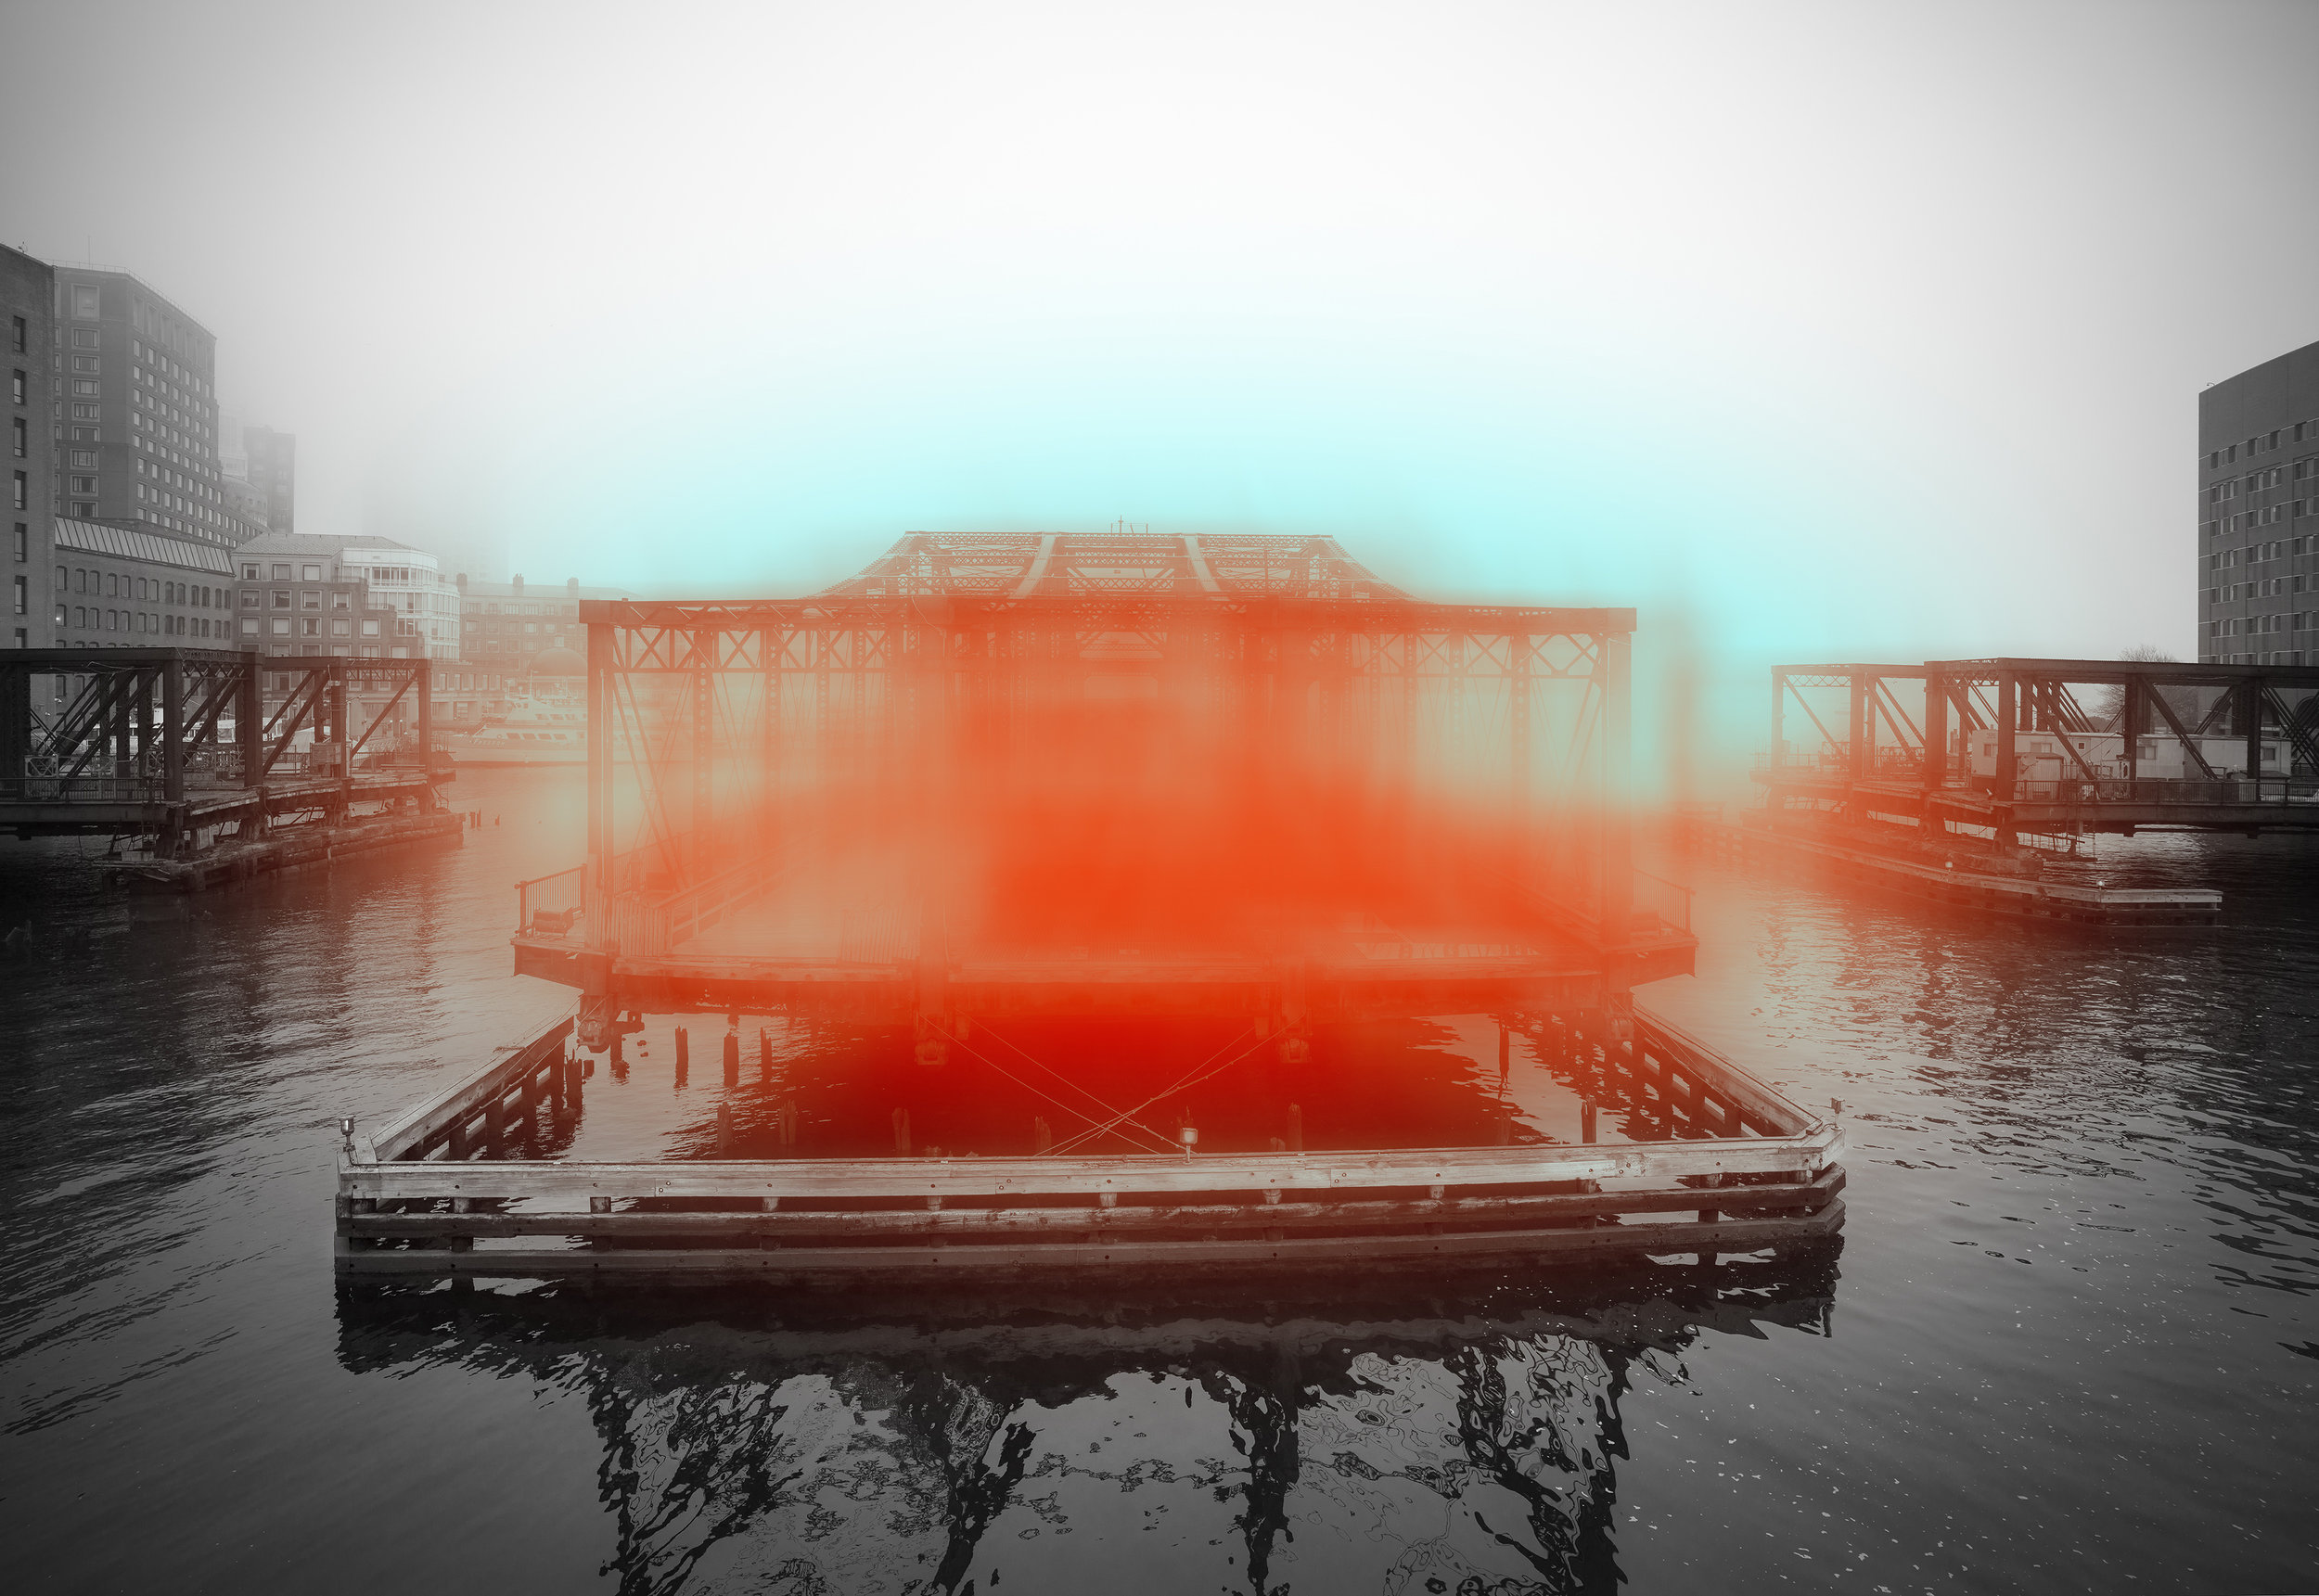 "Jeffrey Heyne ,  Bridge with Orange and Phthalo Blue, 8:24am,  digital photograph on plexiglass, 30"" x 45"", $3,400"